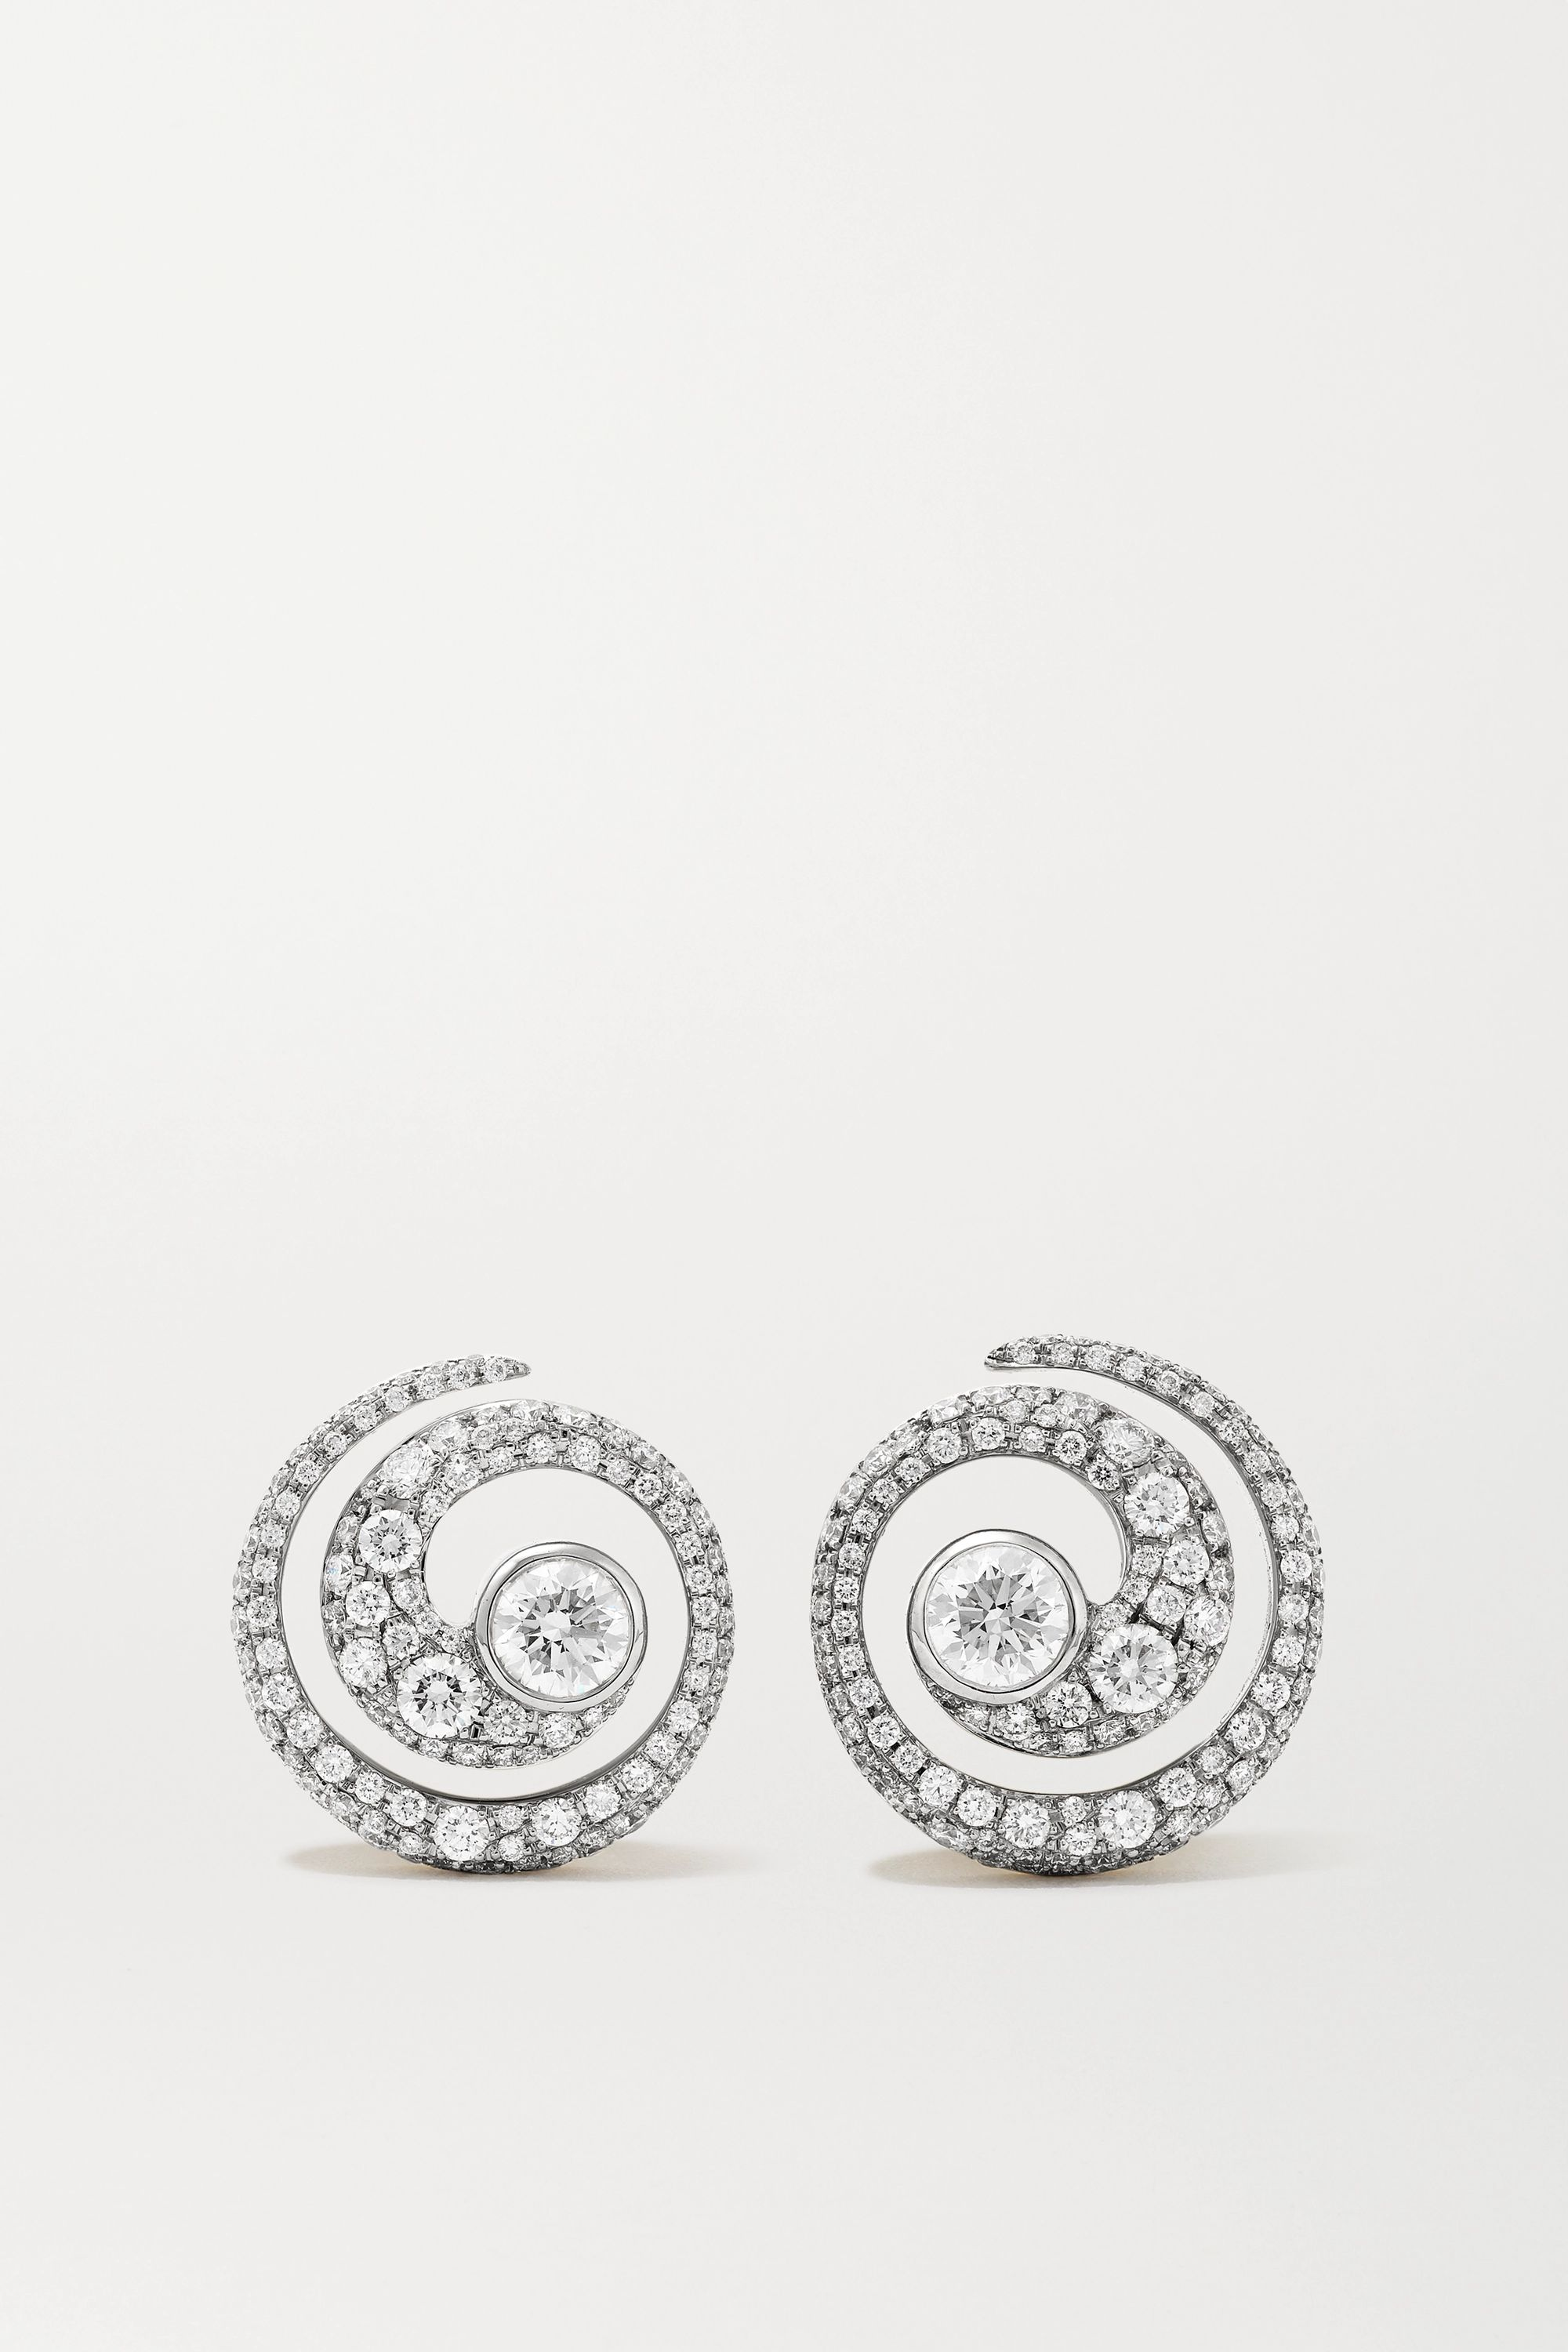 Jessica McCormack 18-karat white and yellow gold diamond earrings